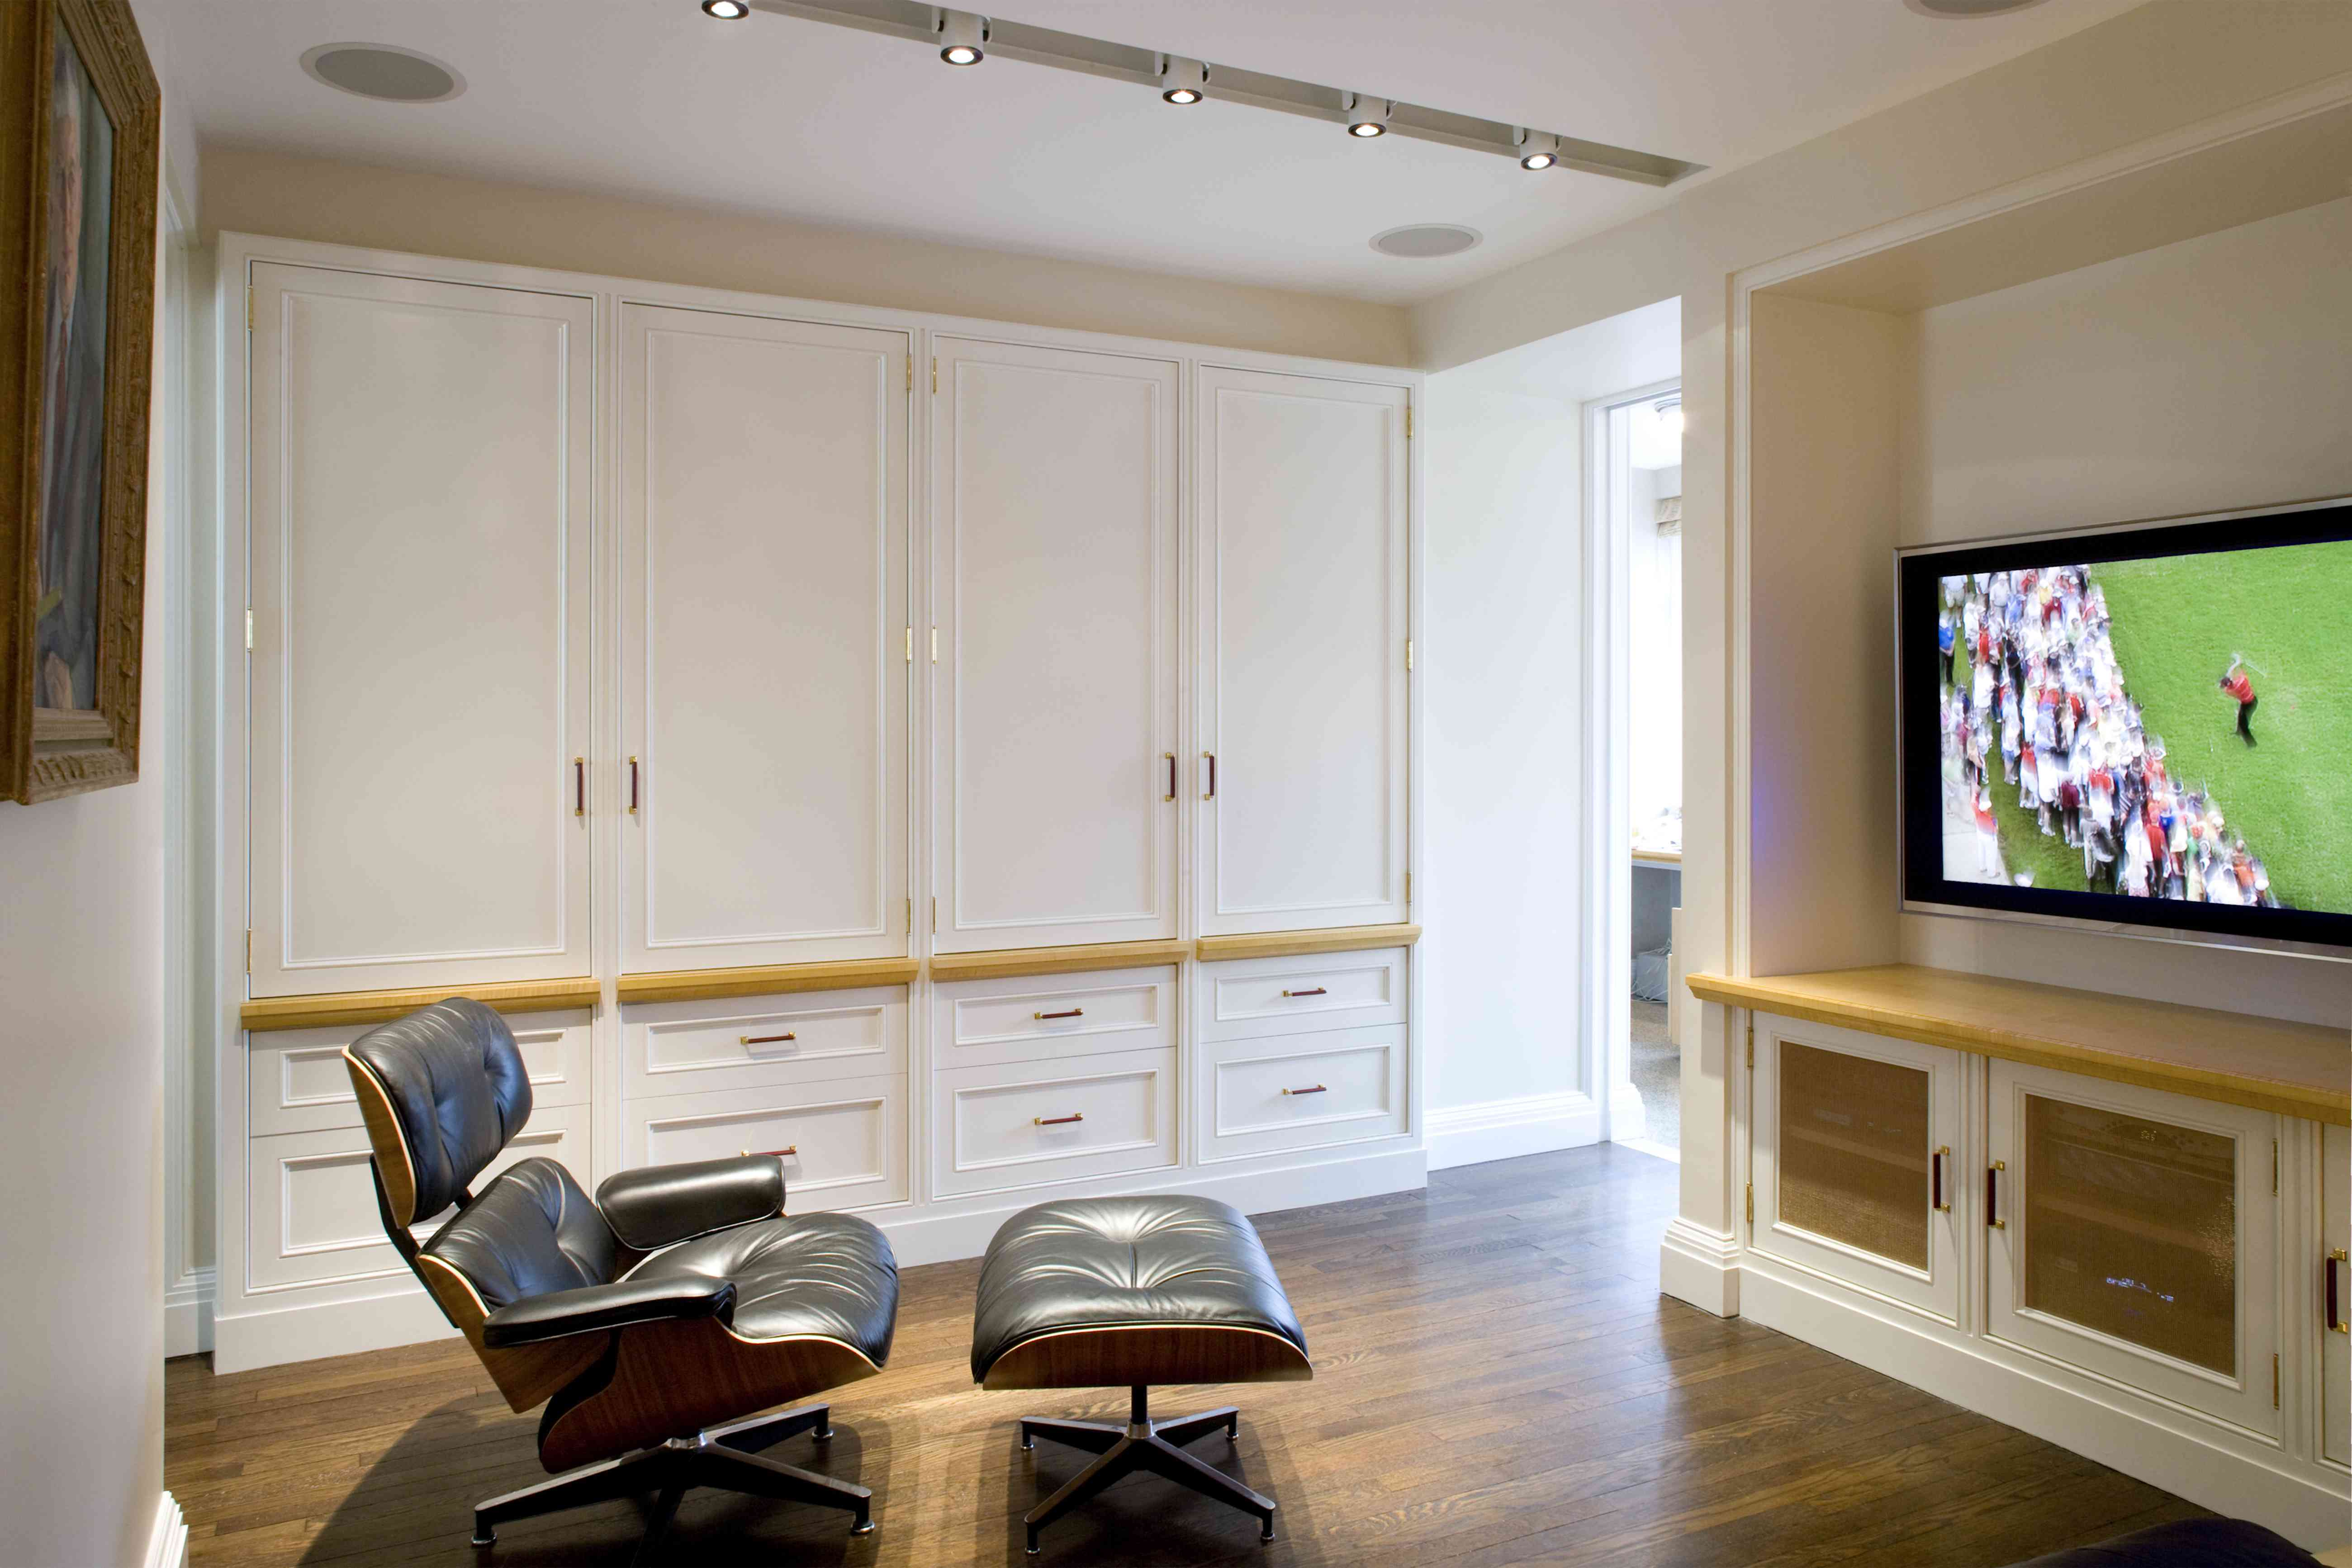 Media Room with Eames Lounge Chair and Flat screen TV